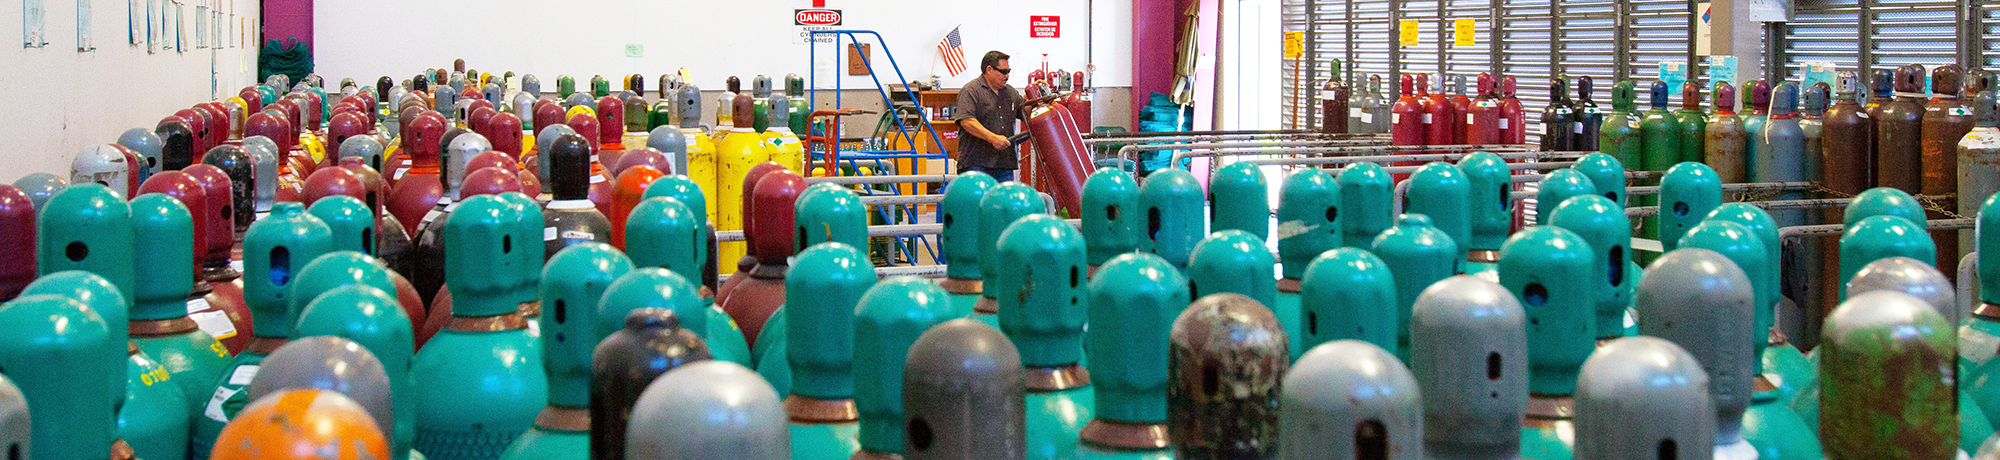 gas cylinders being stored